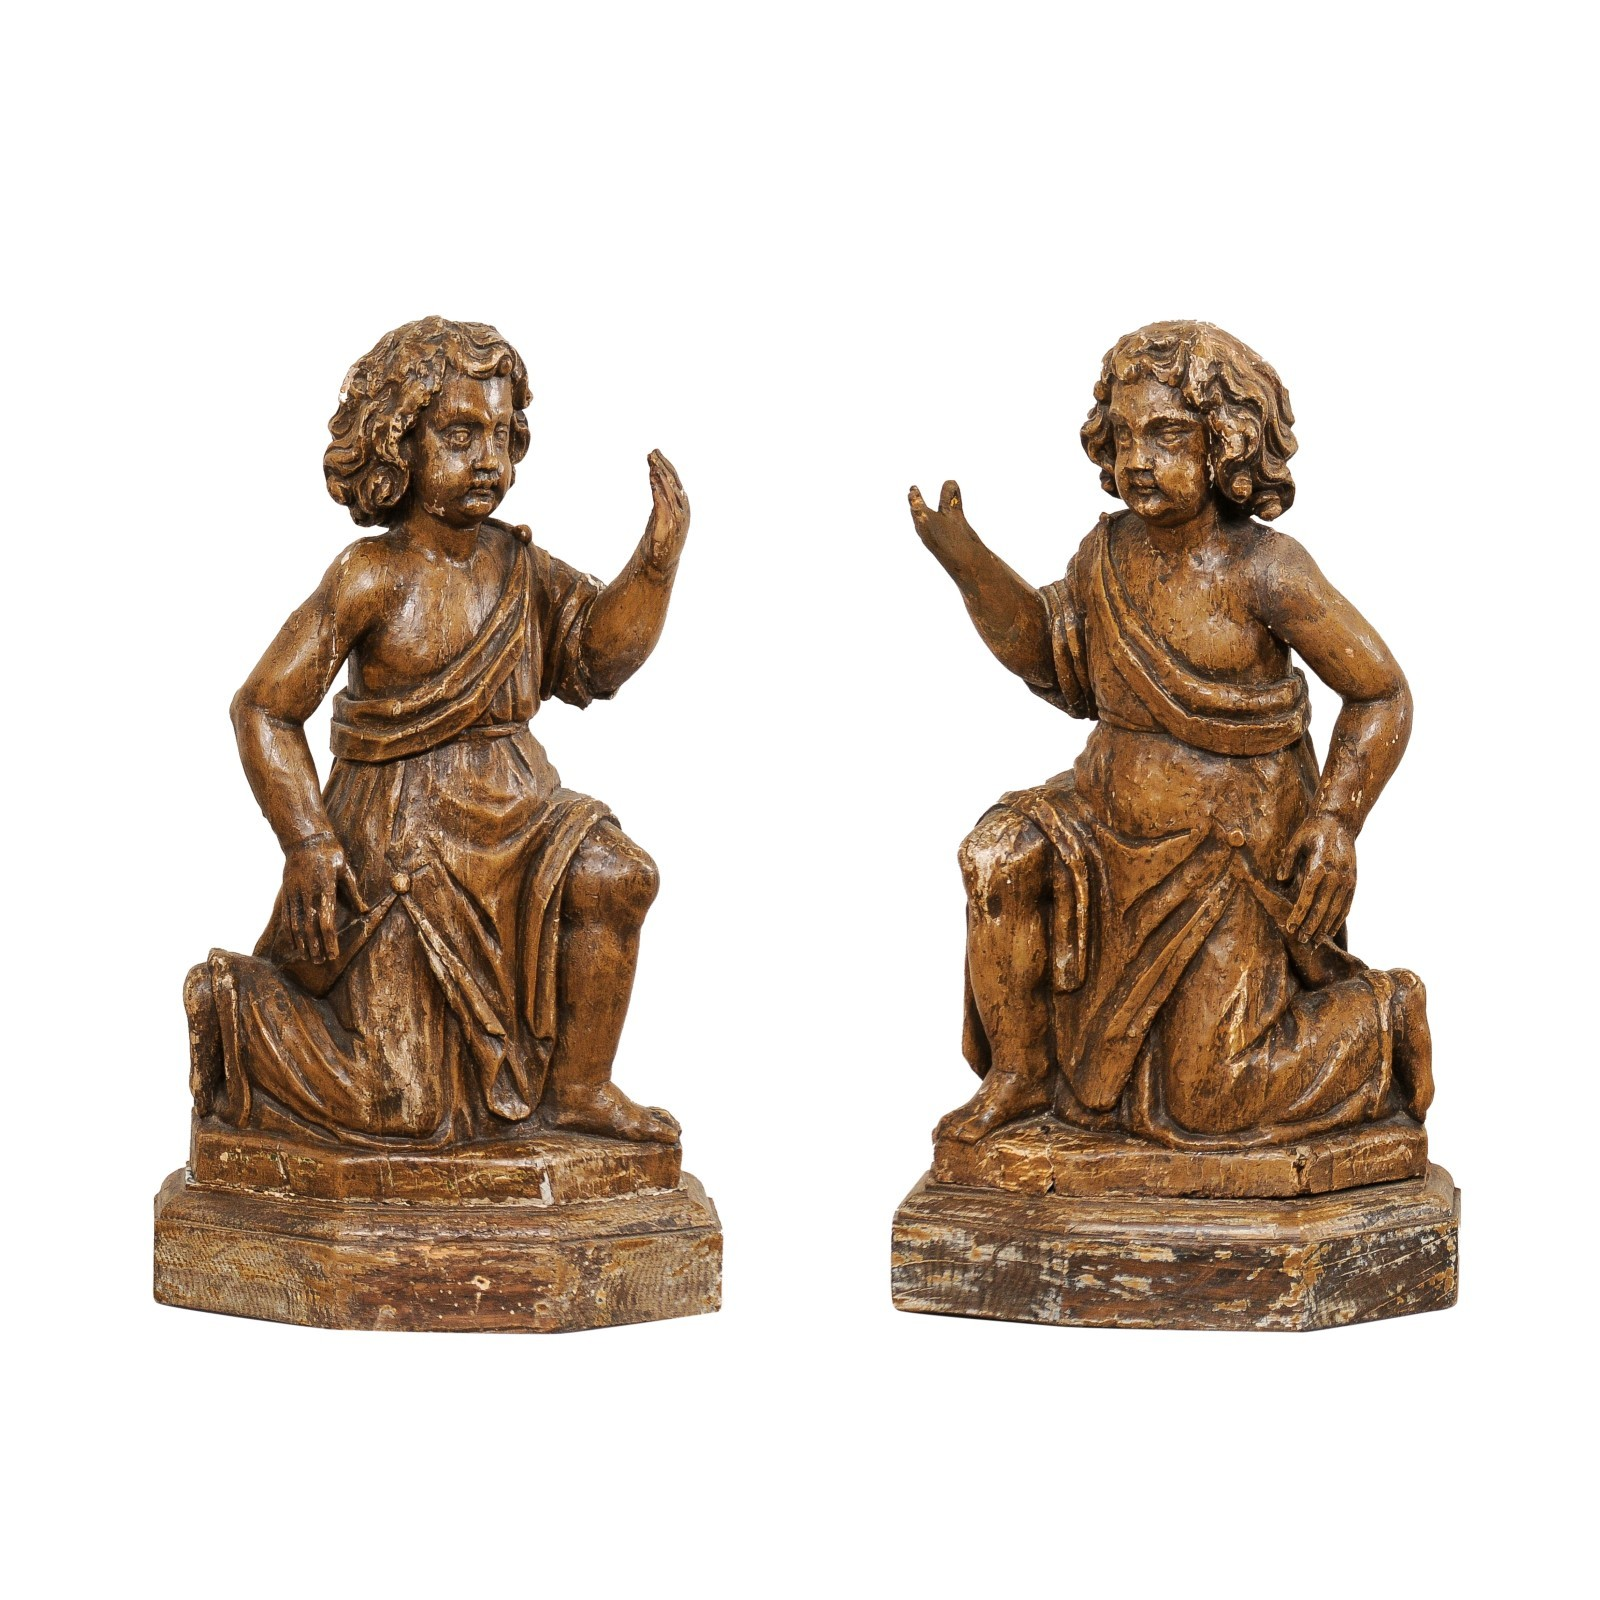 French Carved-Wood Putti Figures, 19th C.